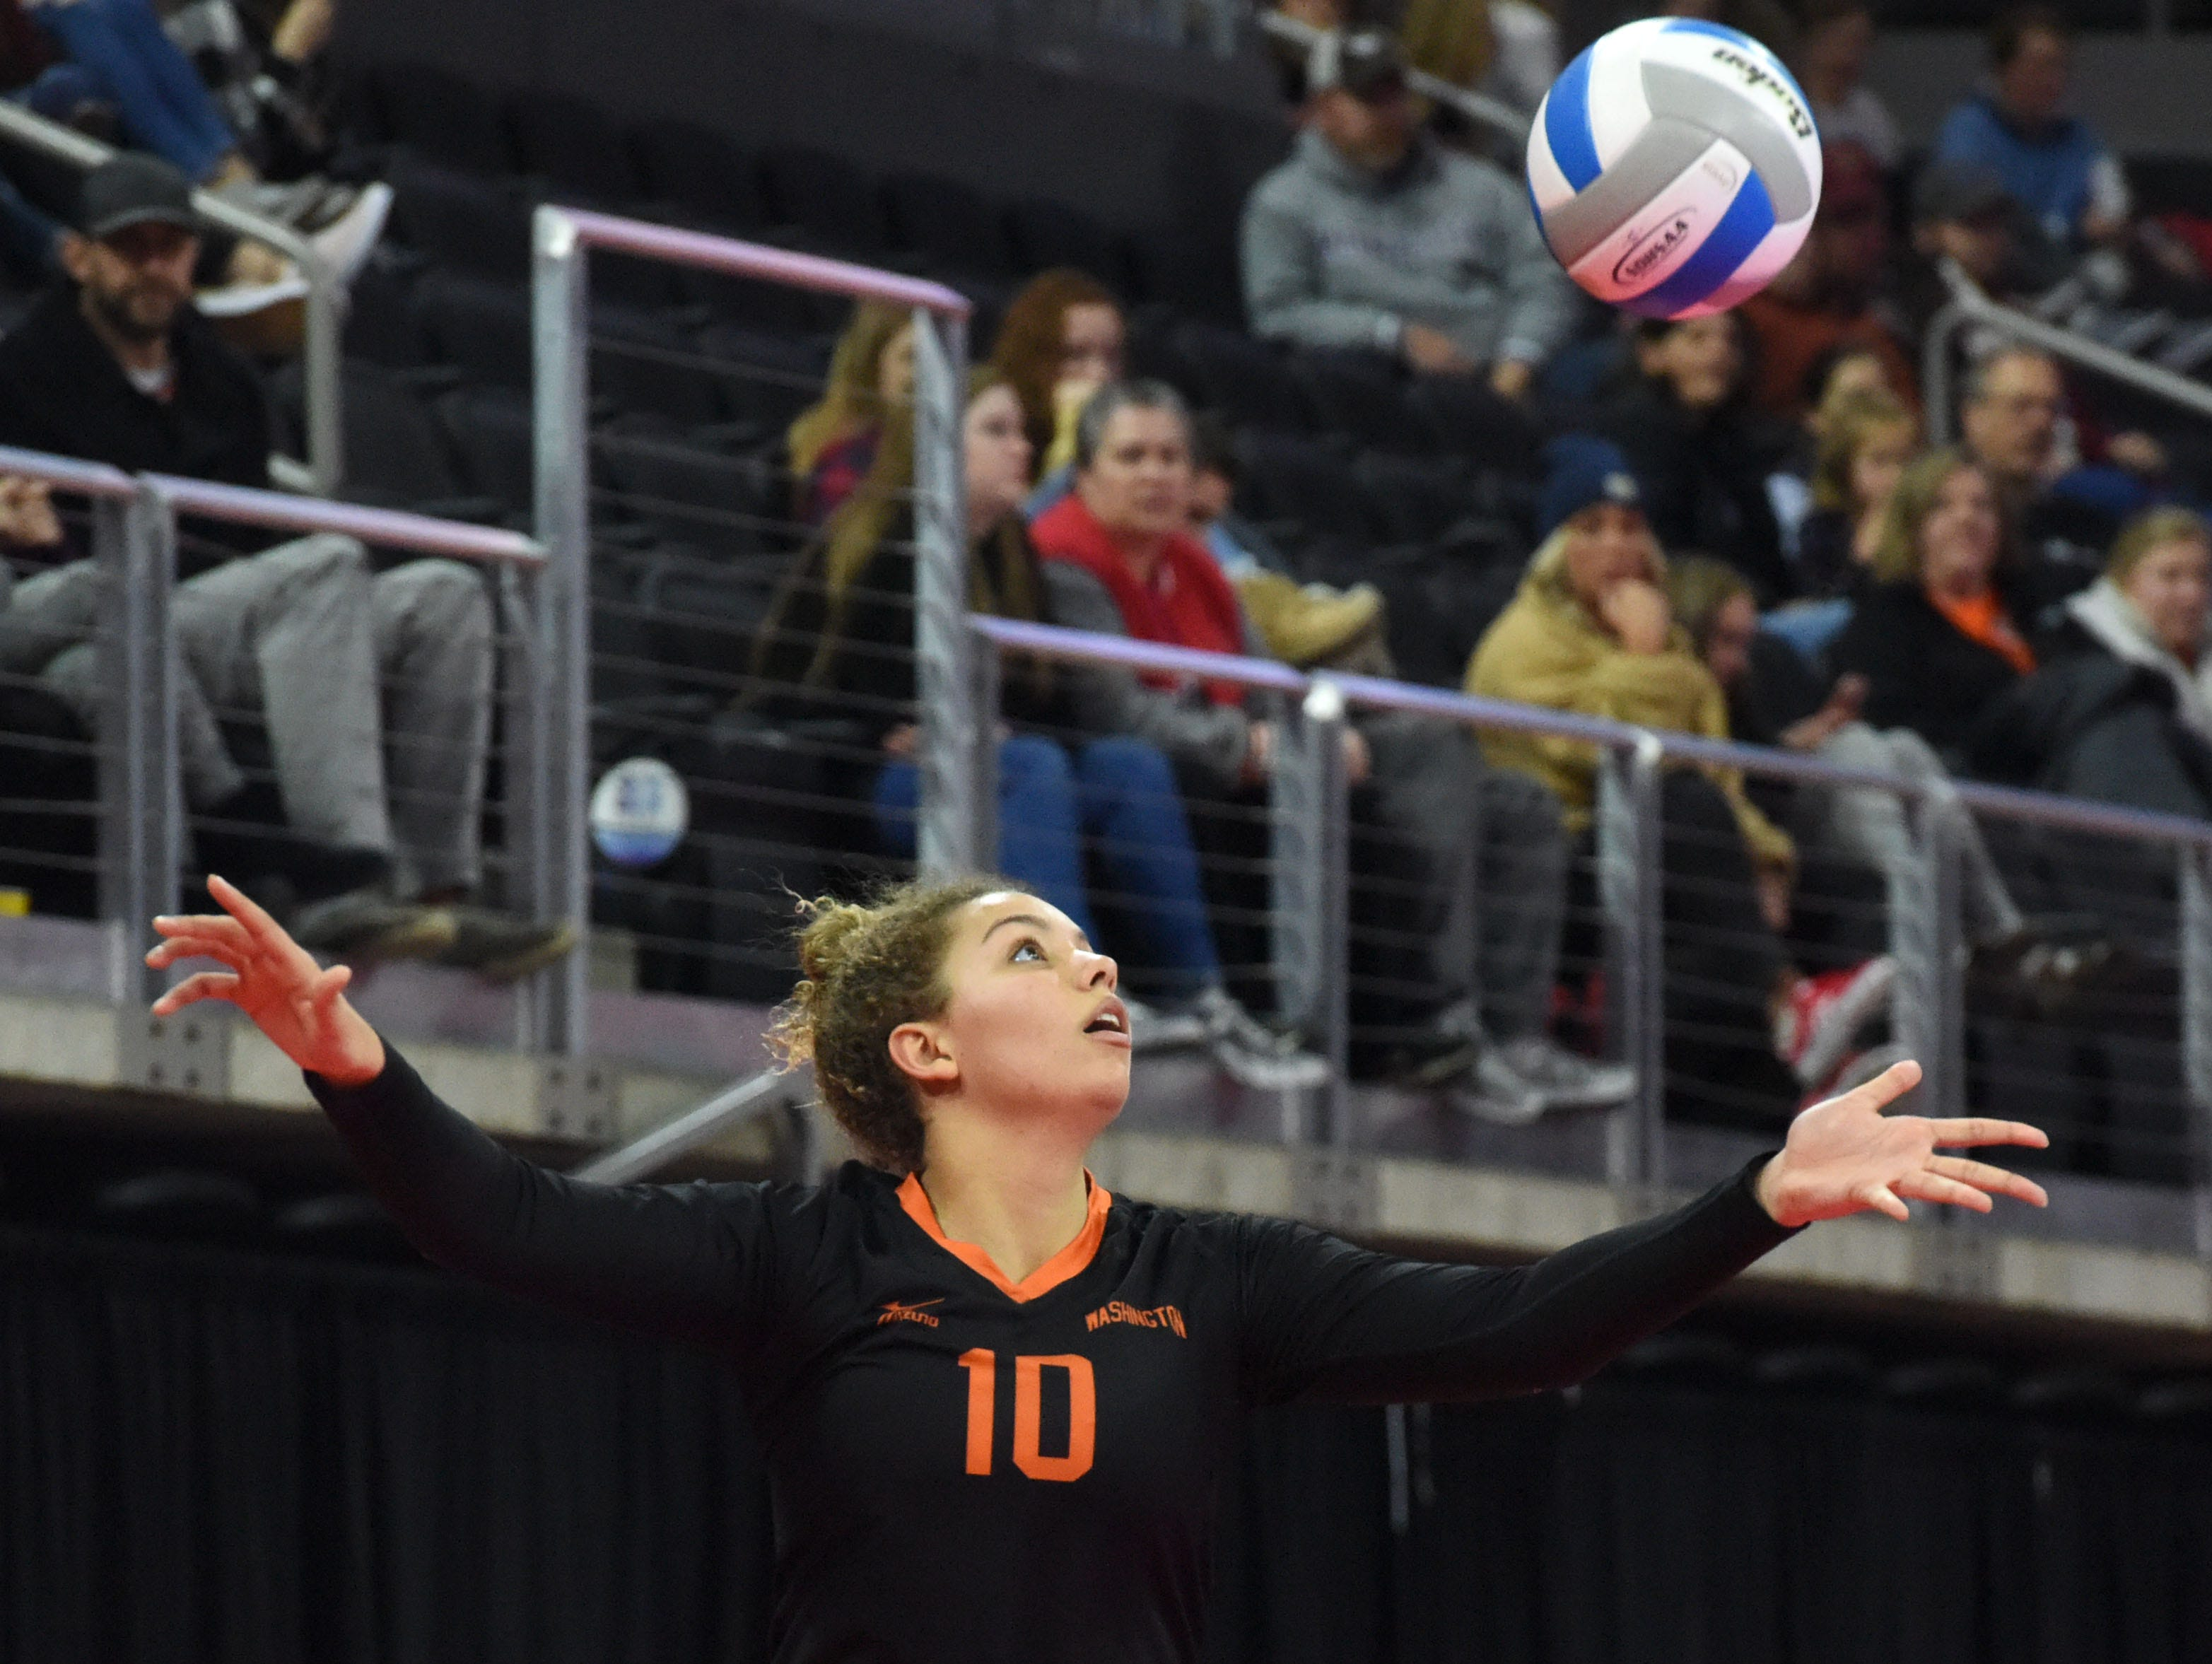 Washington's Samiya Jami (10) serves the ball during a match against Rapid City, Saturday, Nov. 17, 2018, at the Denny Sanford Premier Center in Sioux Falls, S.D.